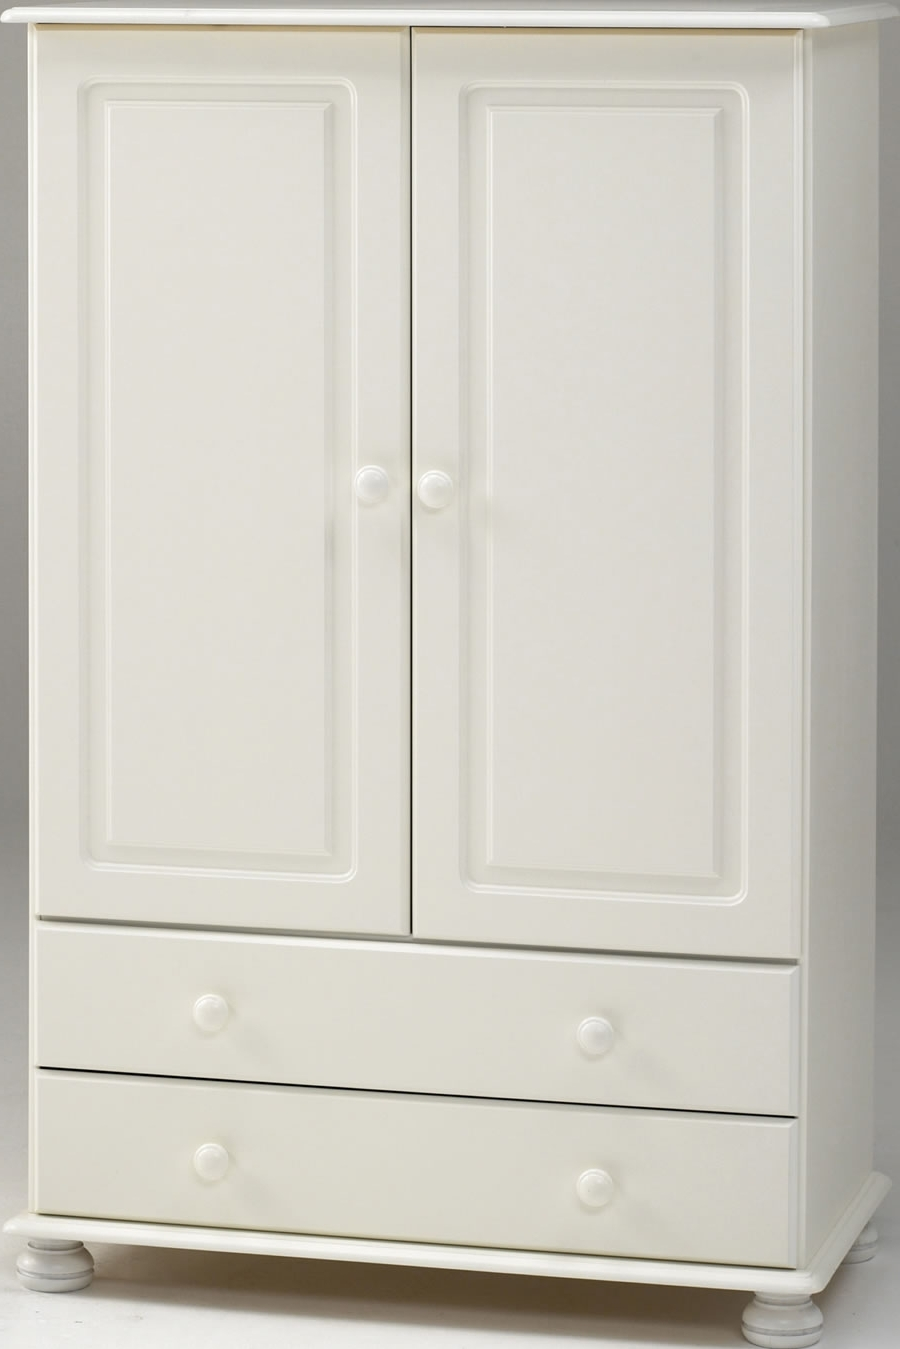 Favorite White 2 Door Wardrobes With Drawers Throughout White 2 Door Wardrobe – Steens Richmond (View 5 of 15)